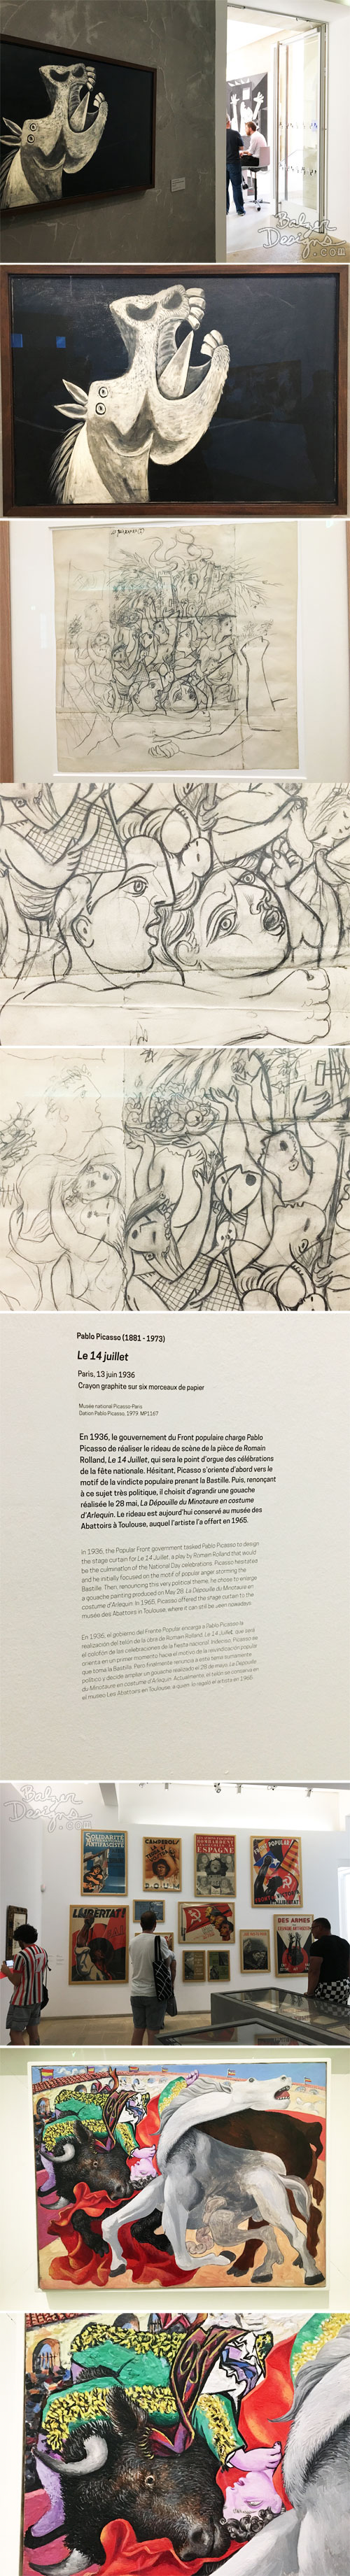 From the Balzer Designs Blog: Picasso Museum: Part One